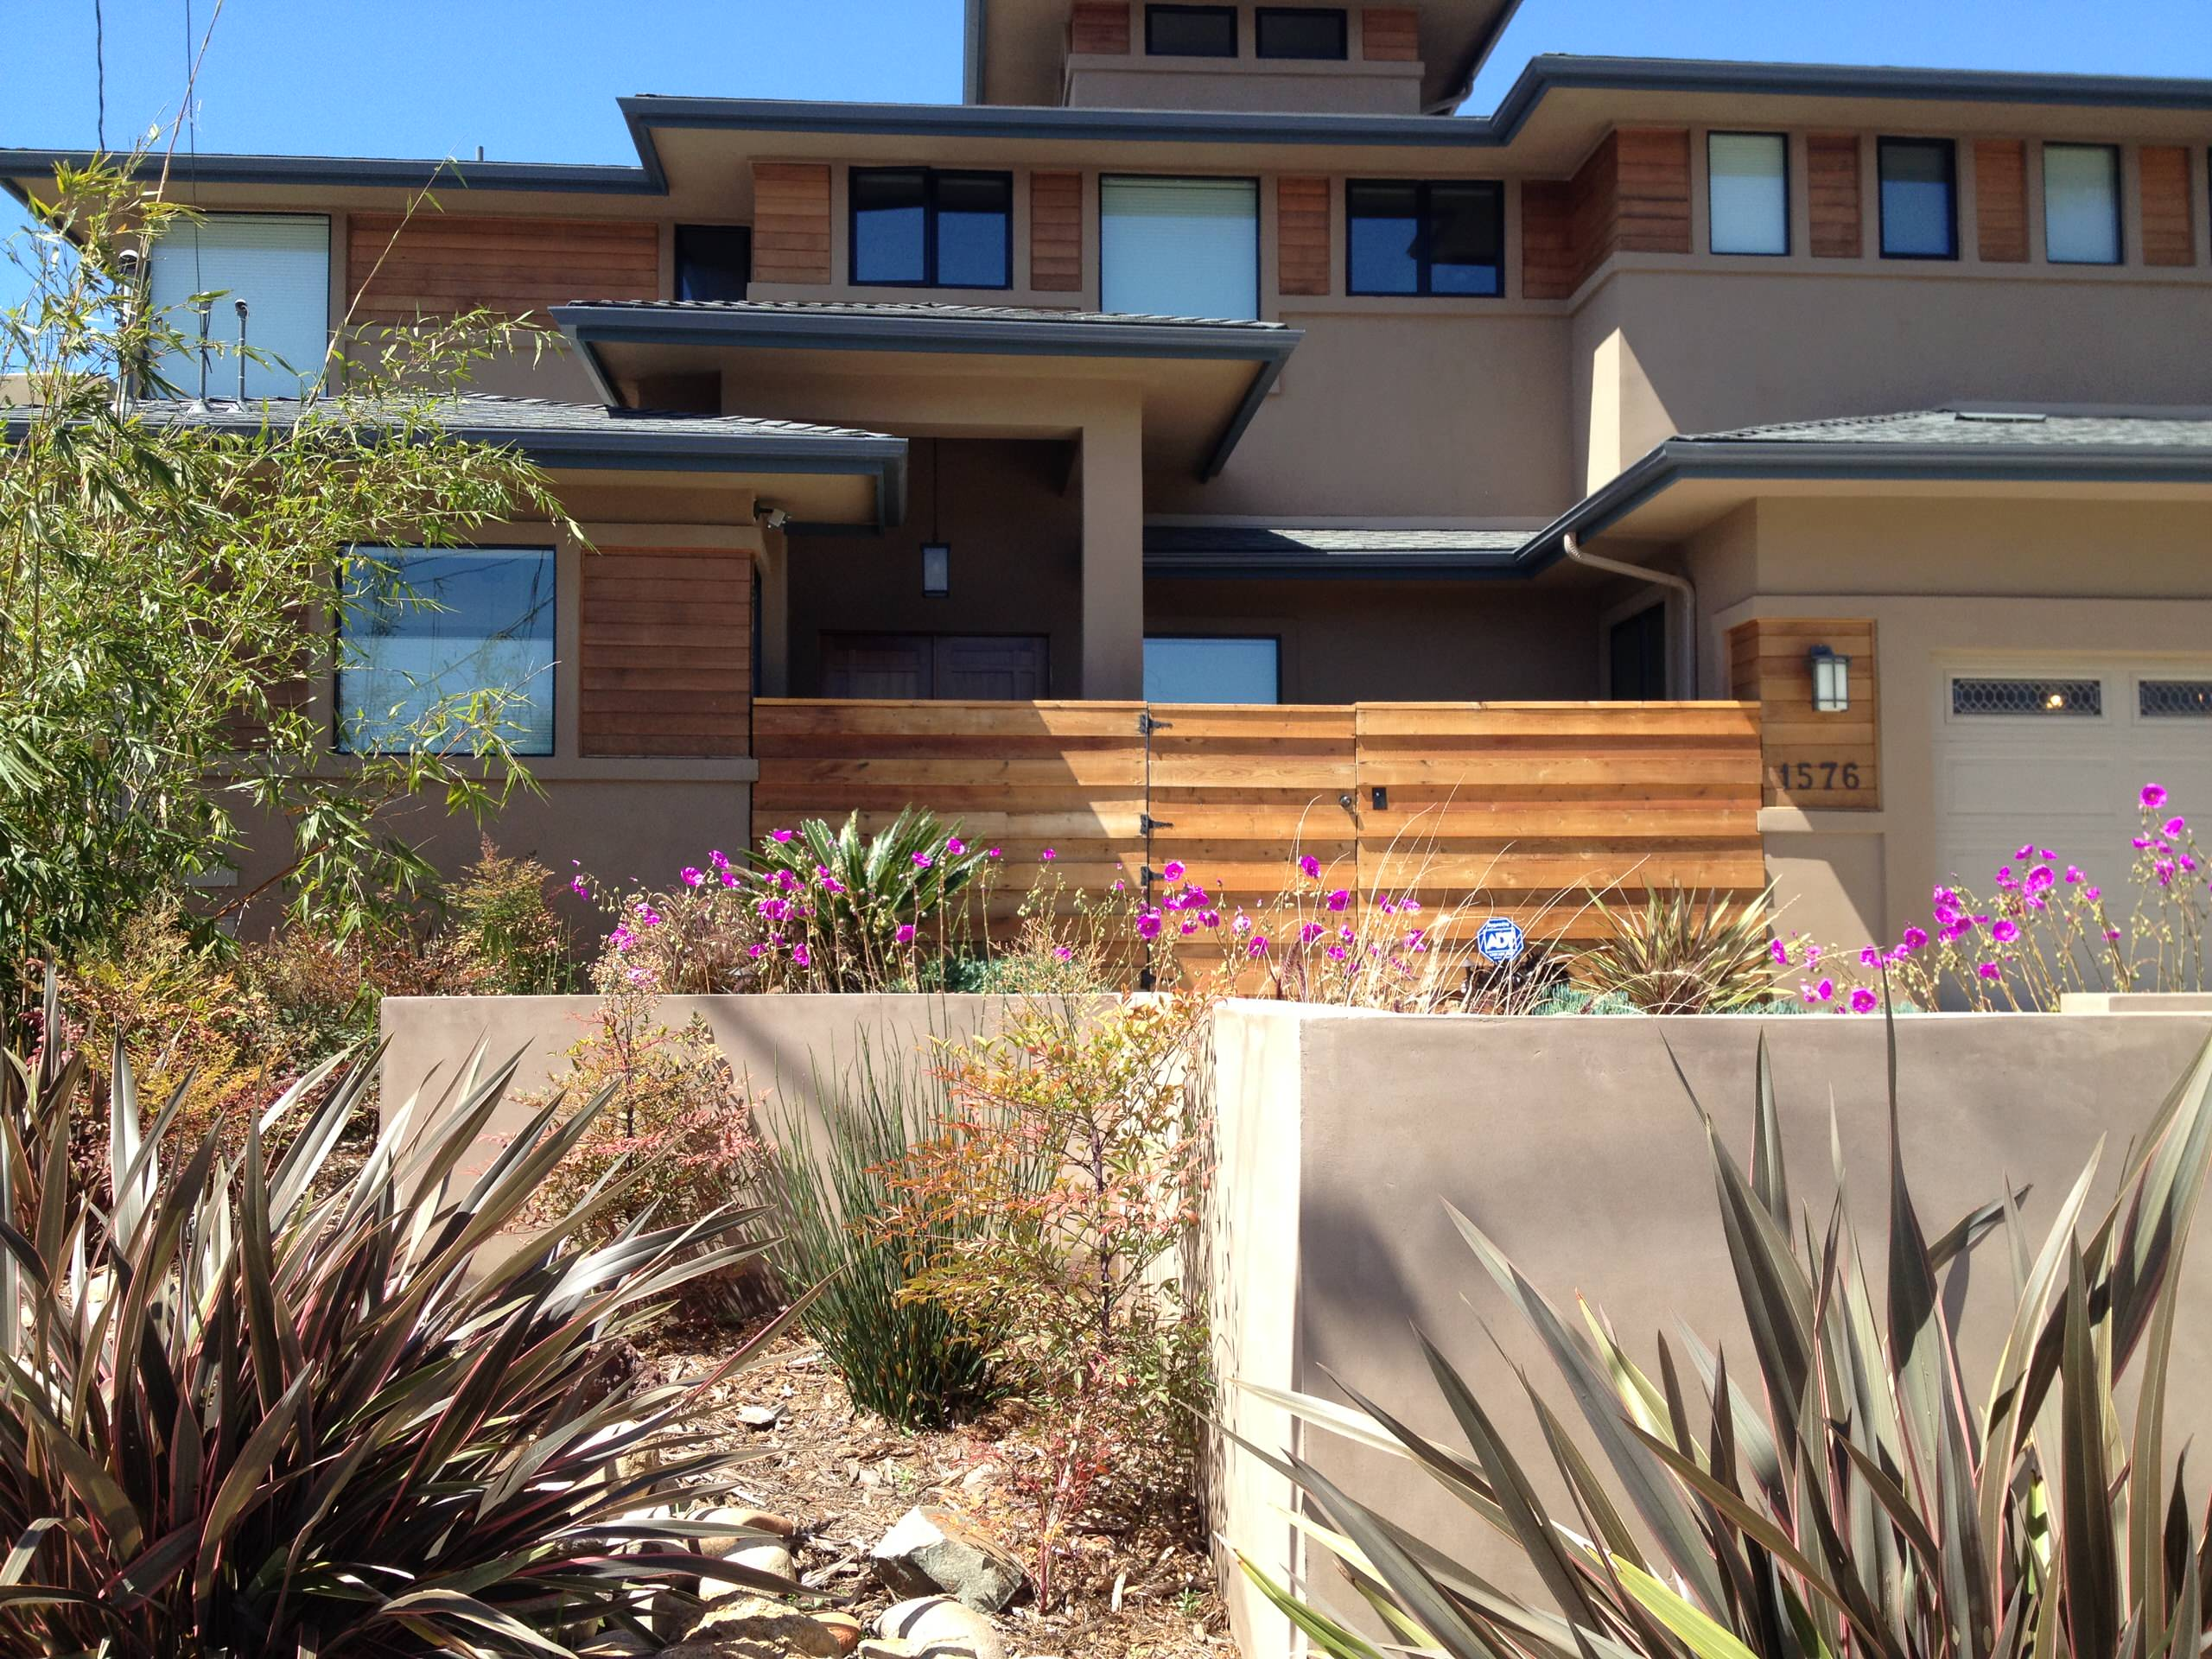 Privacy Stucco Walls and Wood Gate